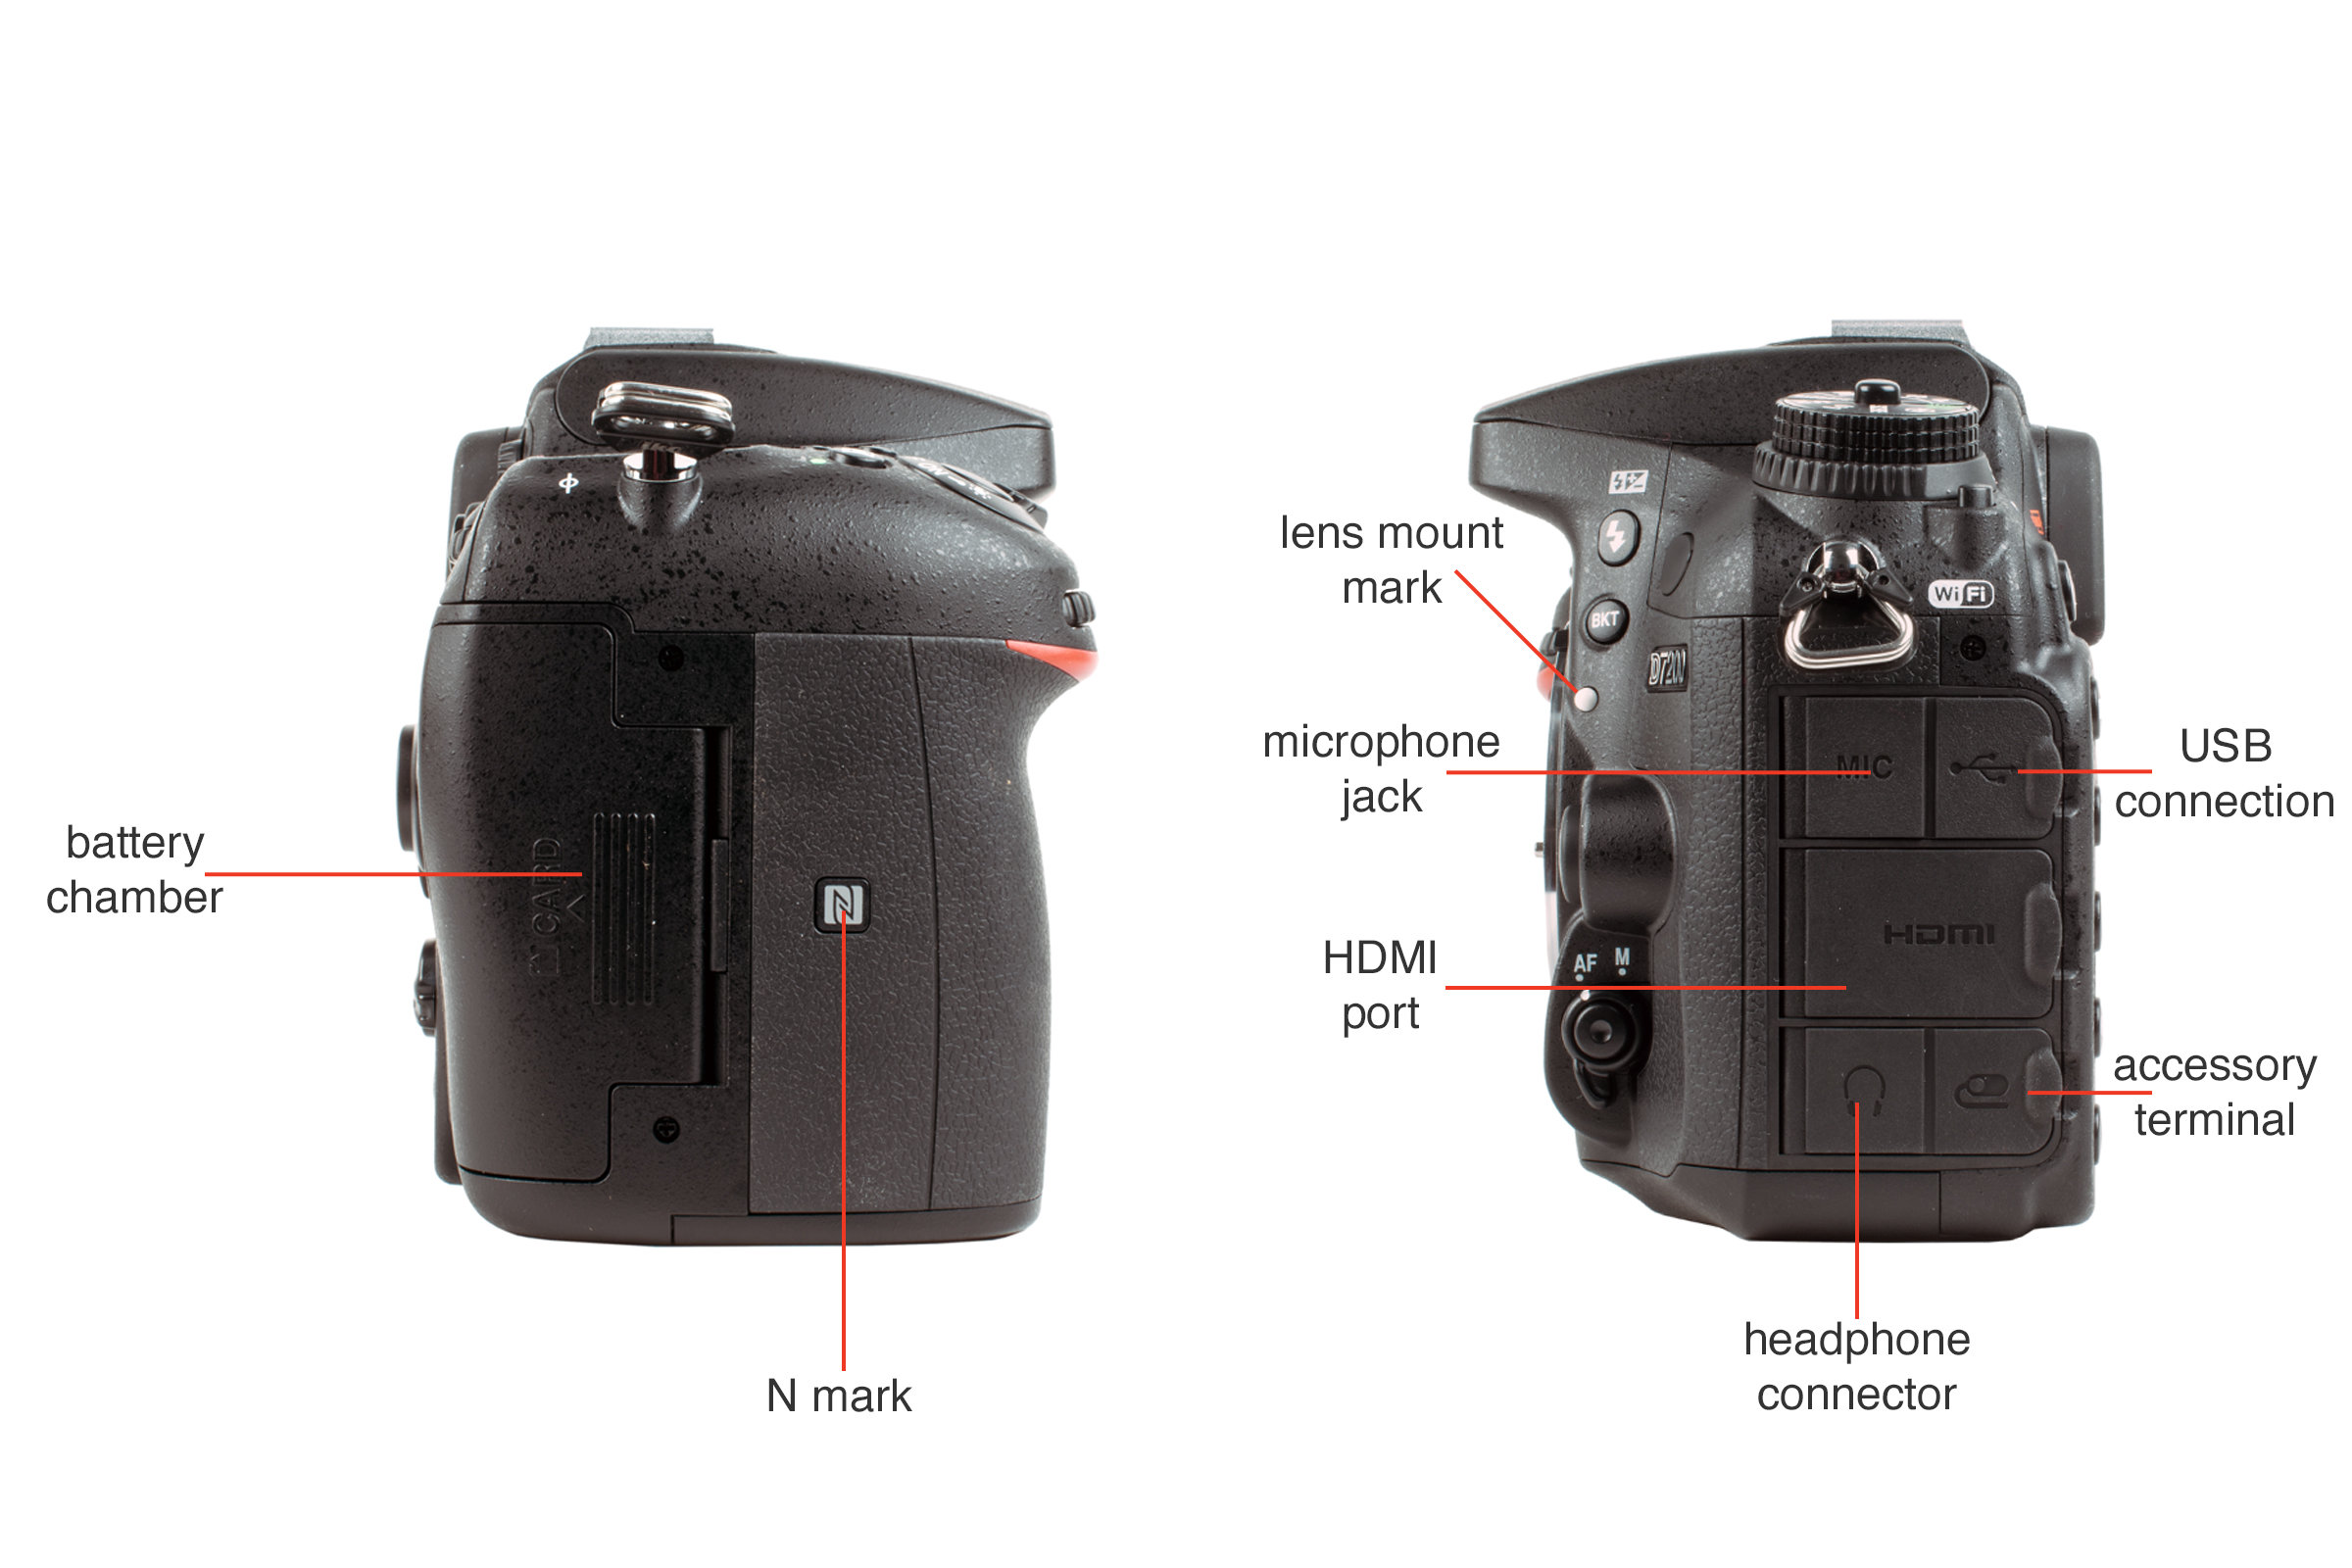 Side view of the Nikon D7200.